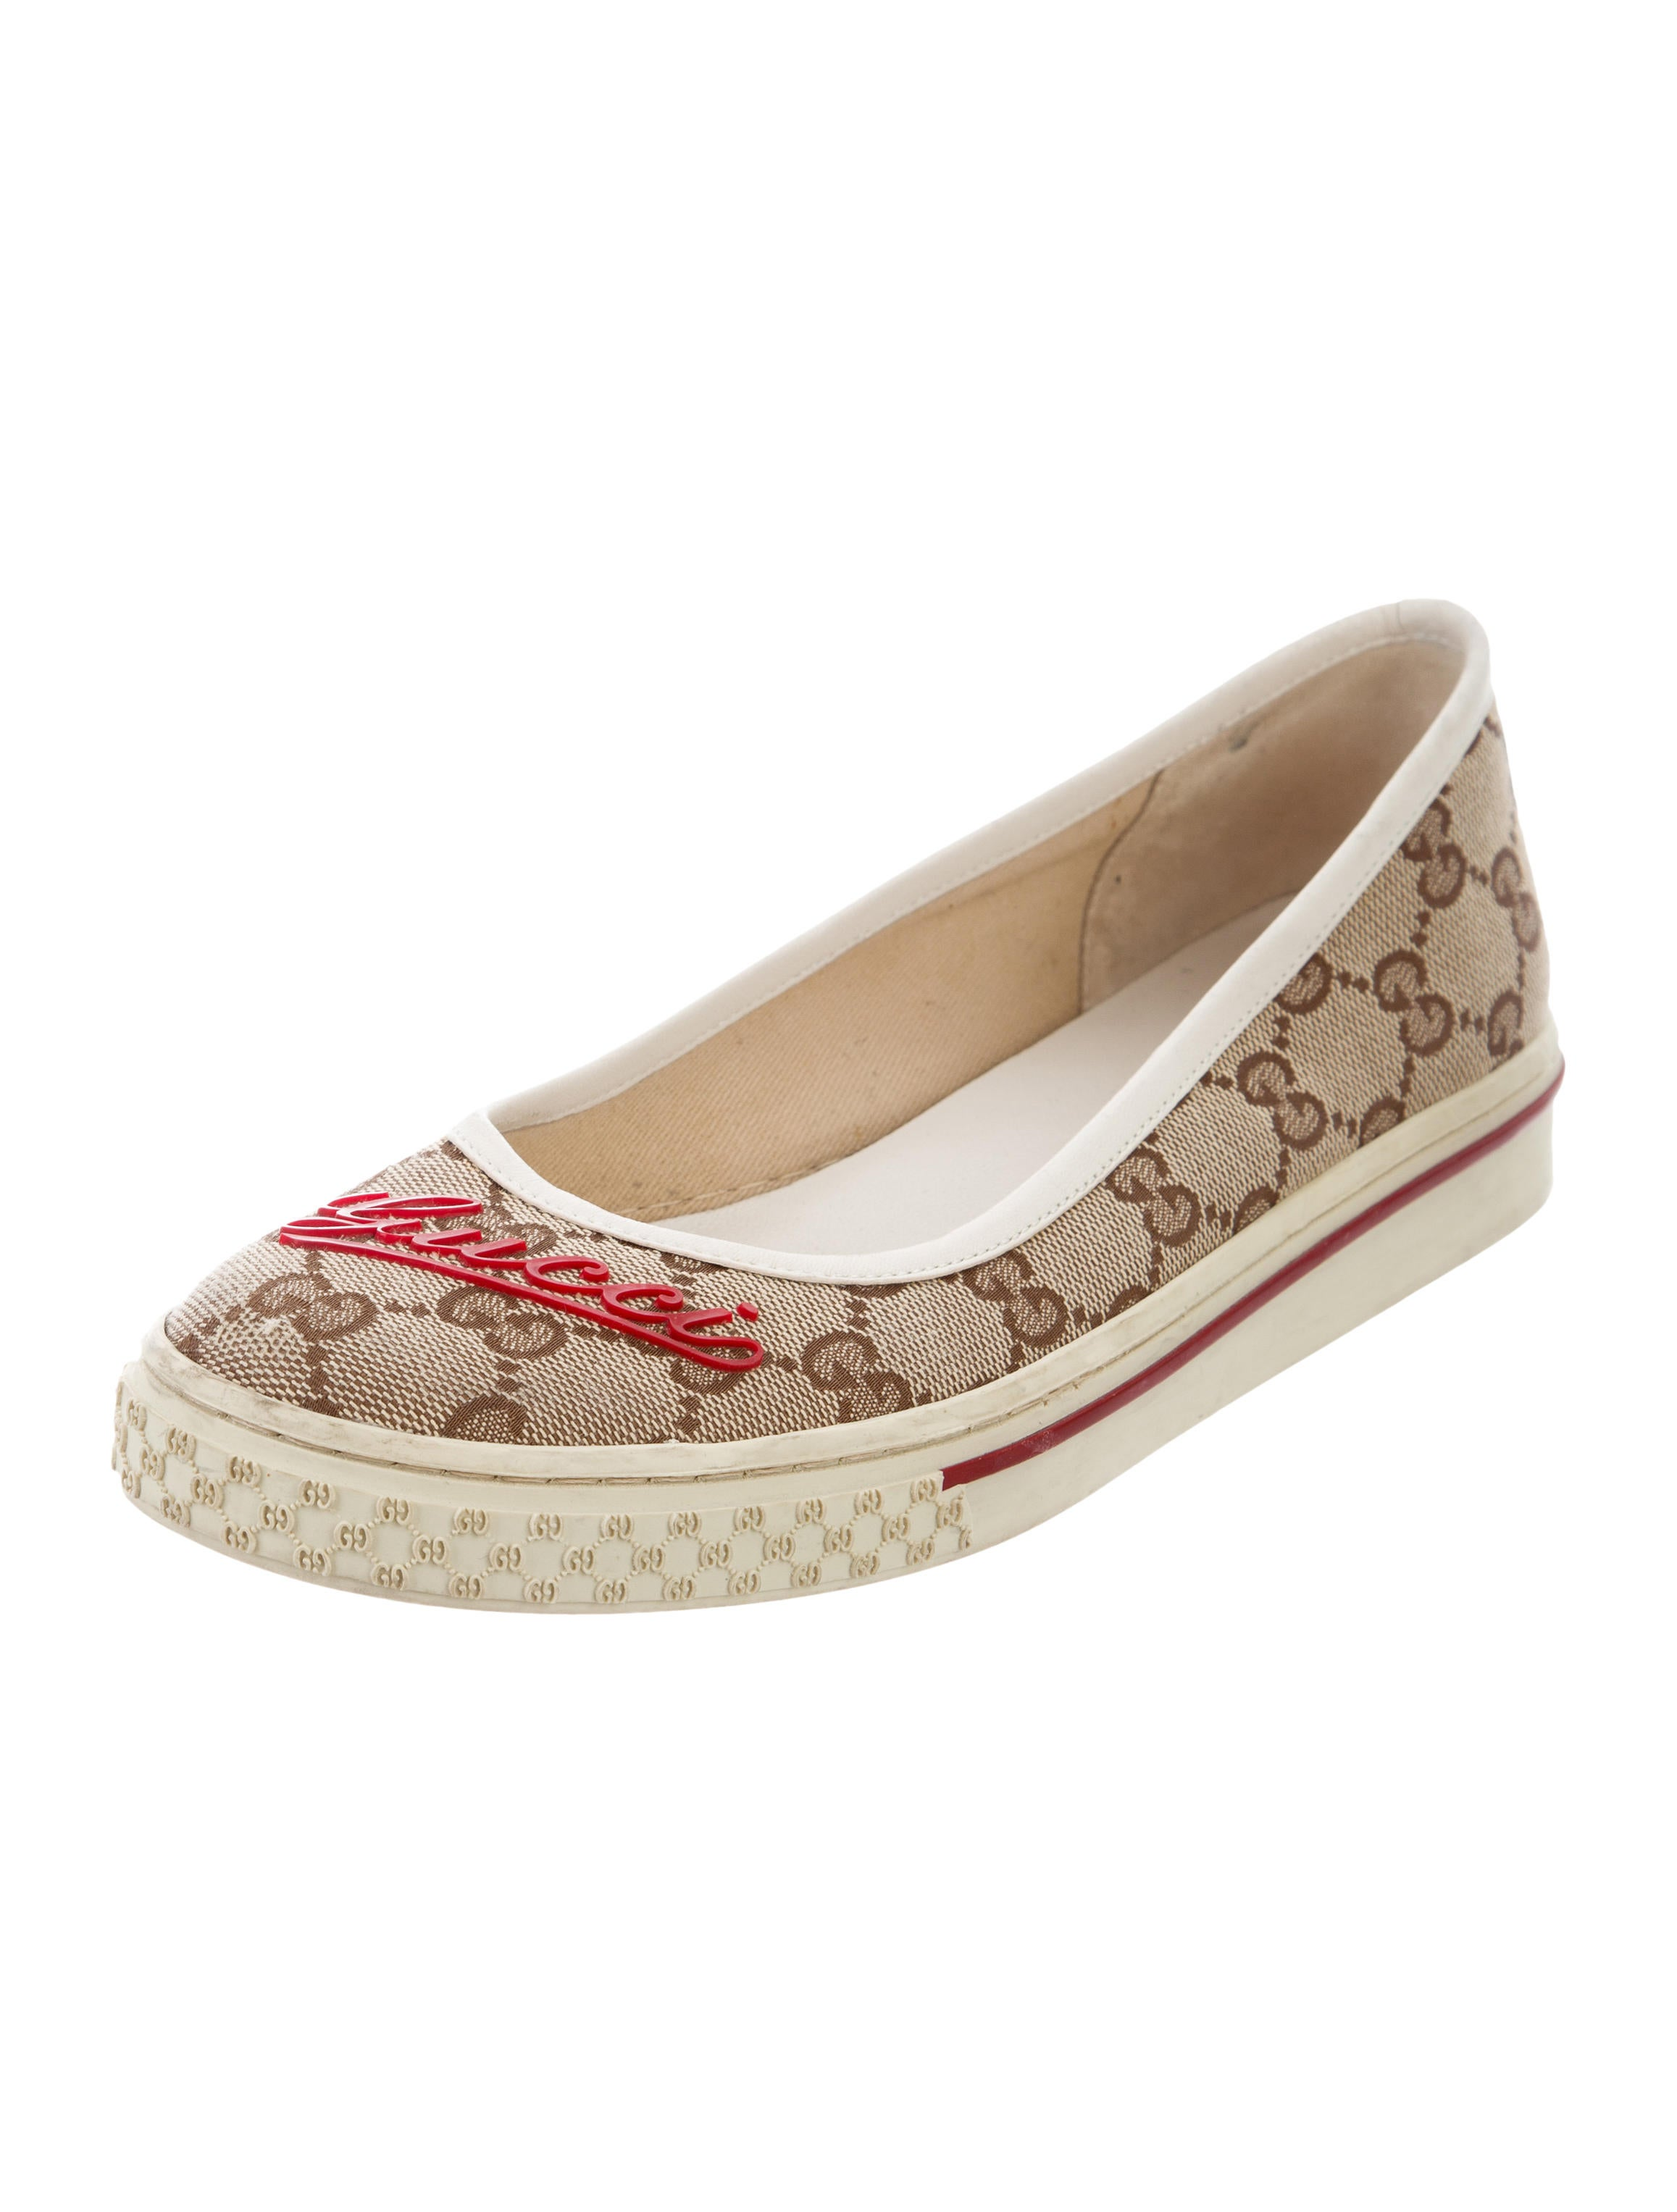 gucci gg canvas flats shoes guc164895 the realreal